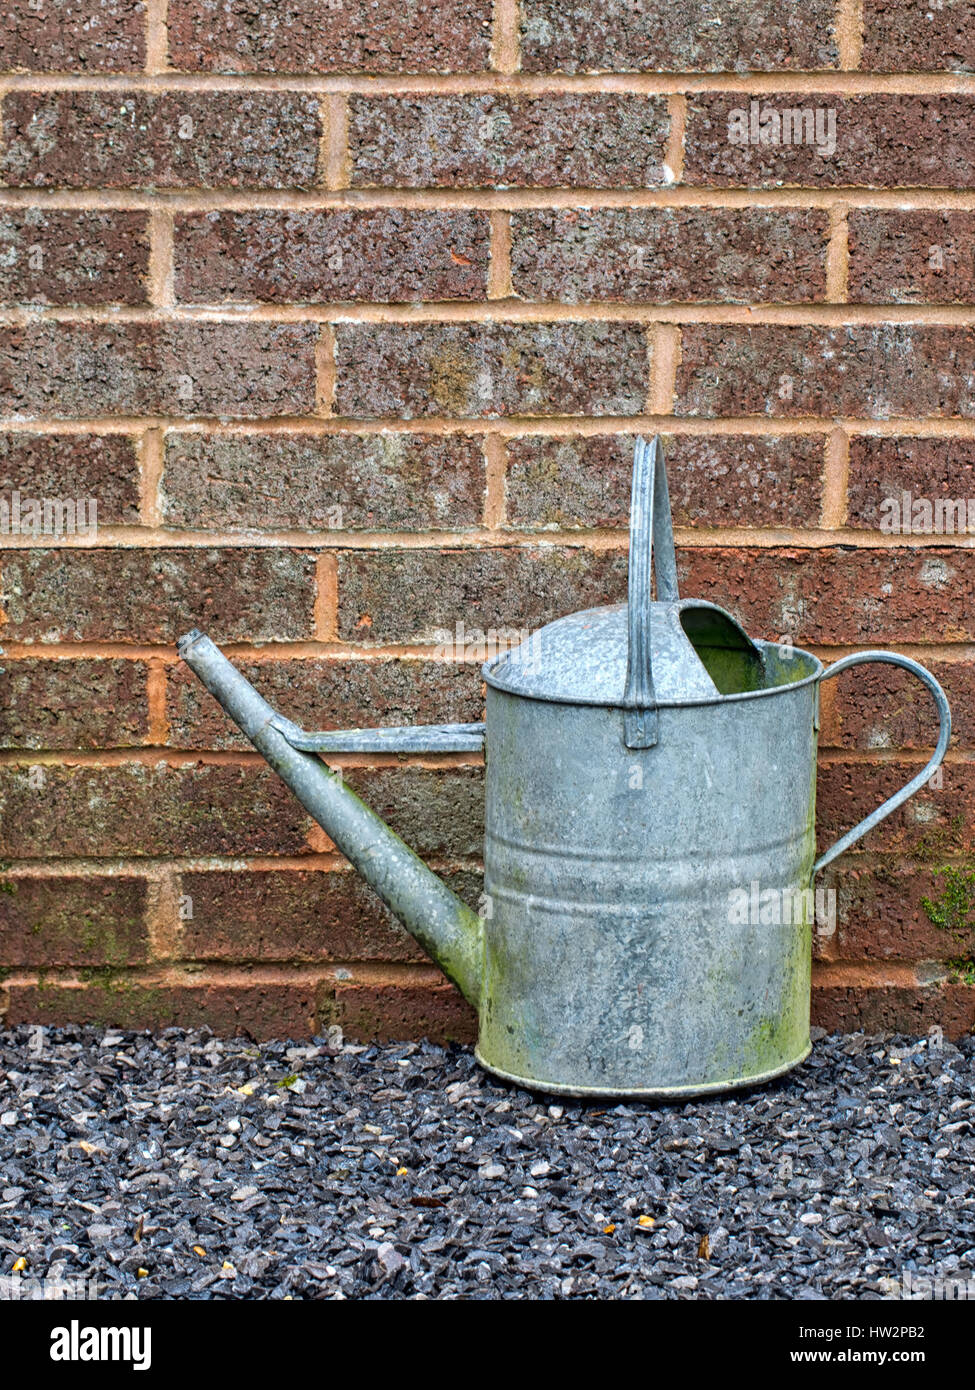 Galvanized old watering can. Old fashioned gardening equipment. - Stock Image